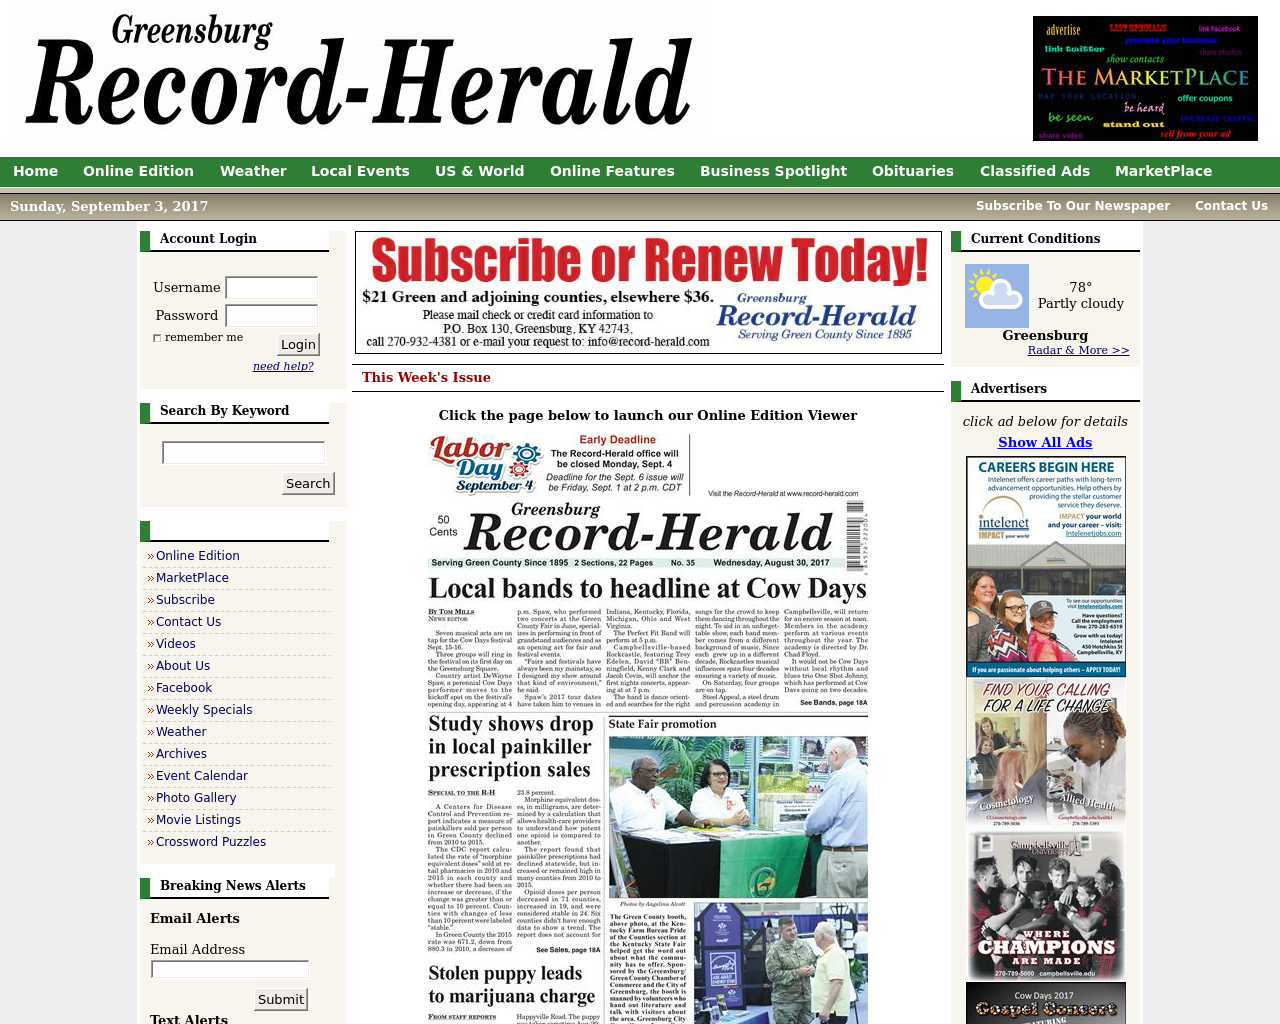 Greensburg-Record-Herald-Advertising-Reviews-Pricing